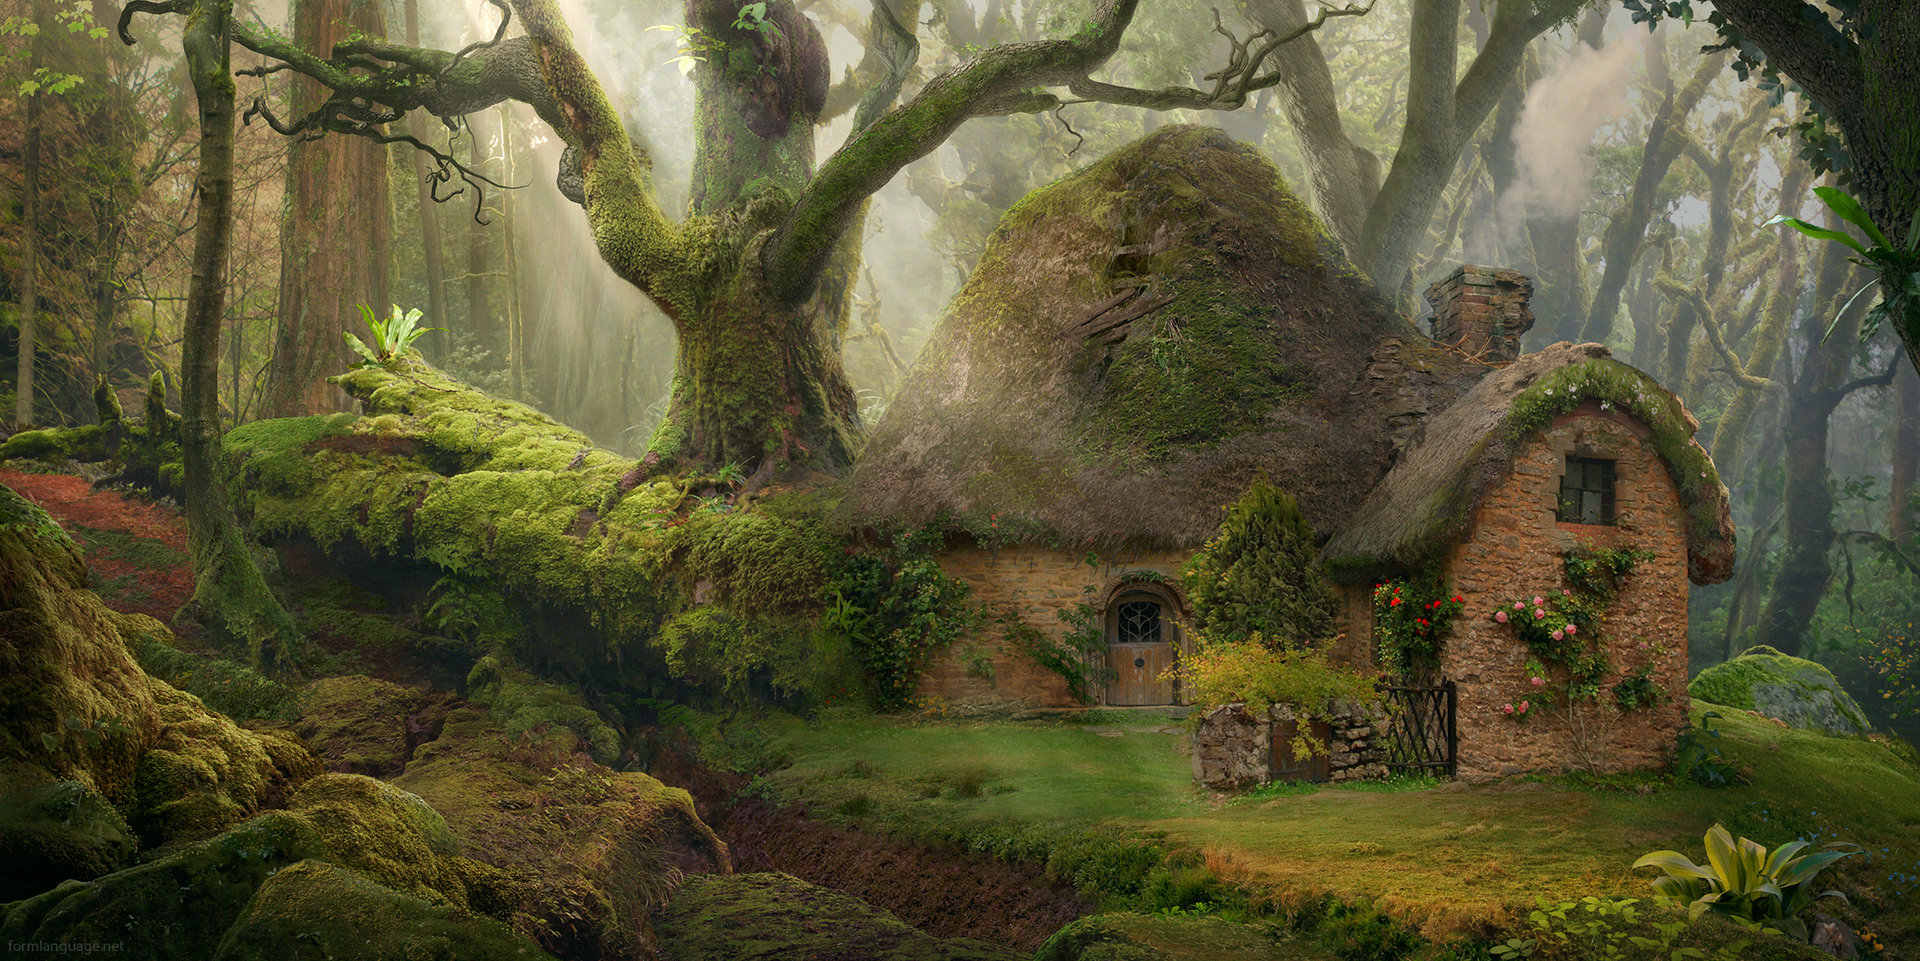 cottage in the forest wallpaper and hintergrund 1920x961